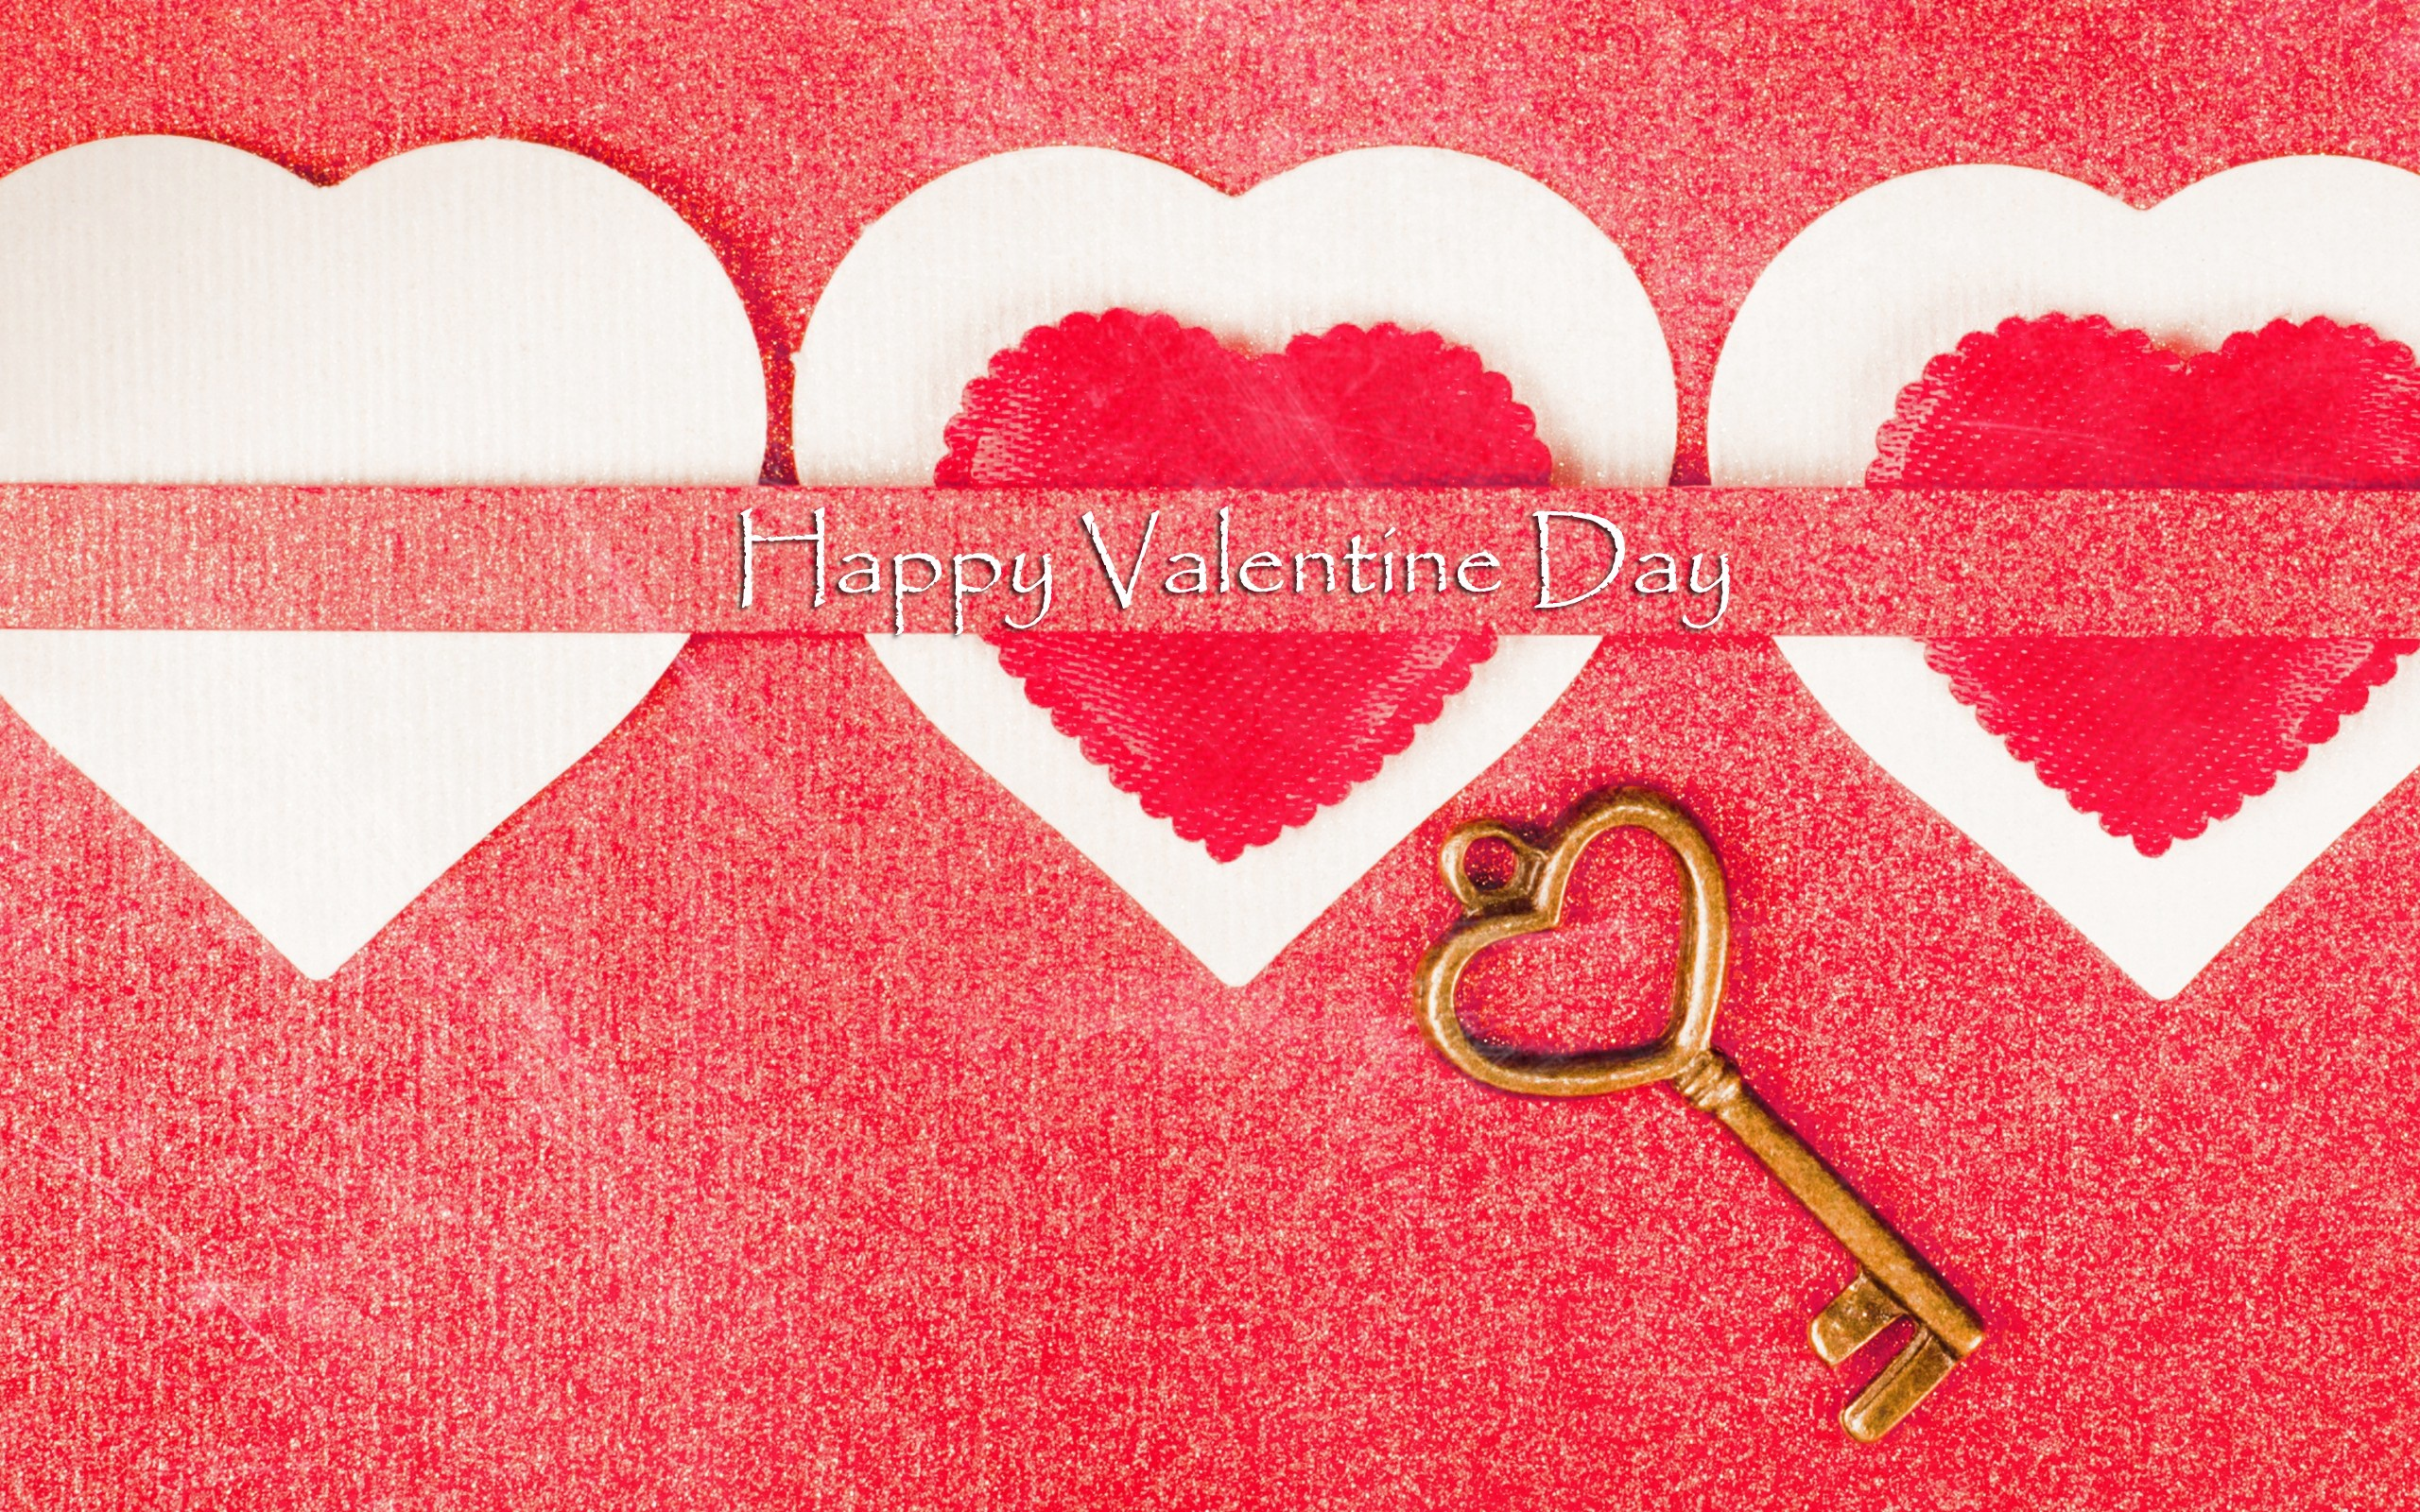 Happy Valentines Day Love Heart Key Wallpaper   New HD Wallpapers 2560x1600